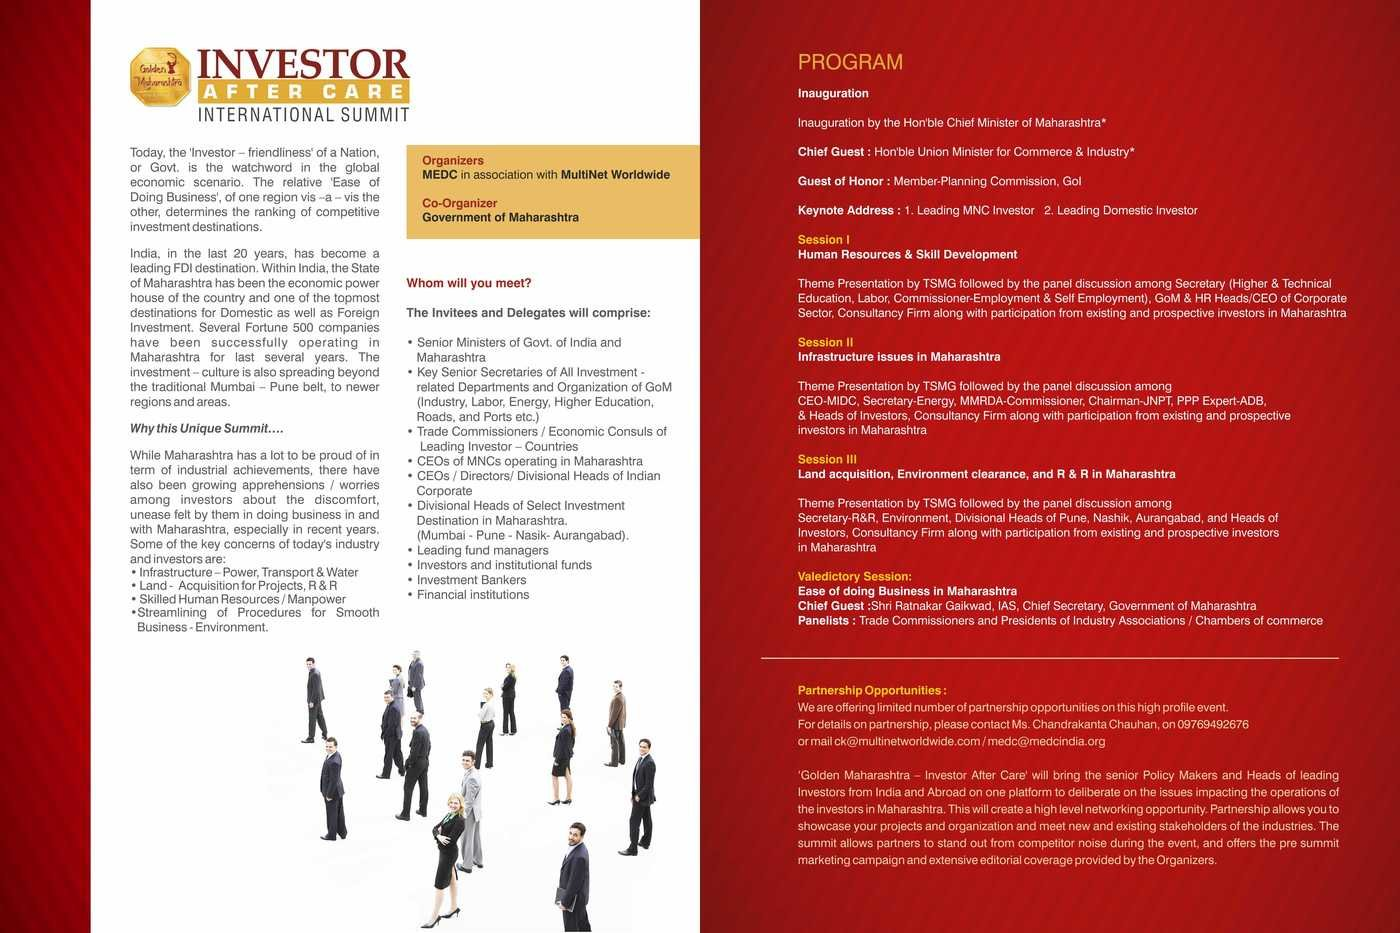 general investors and prospective investors meeting